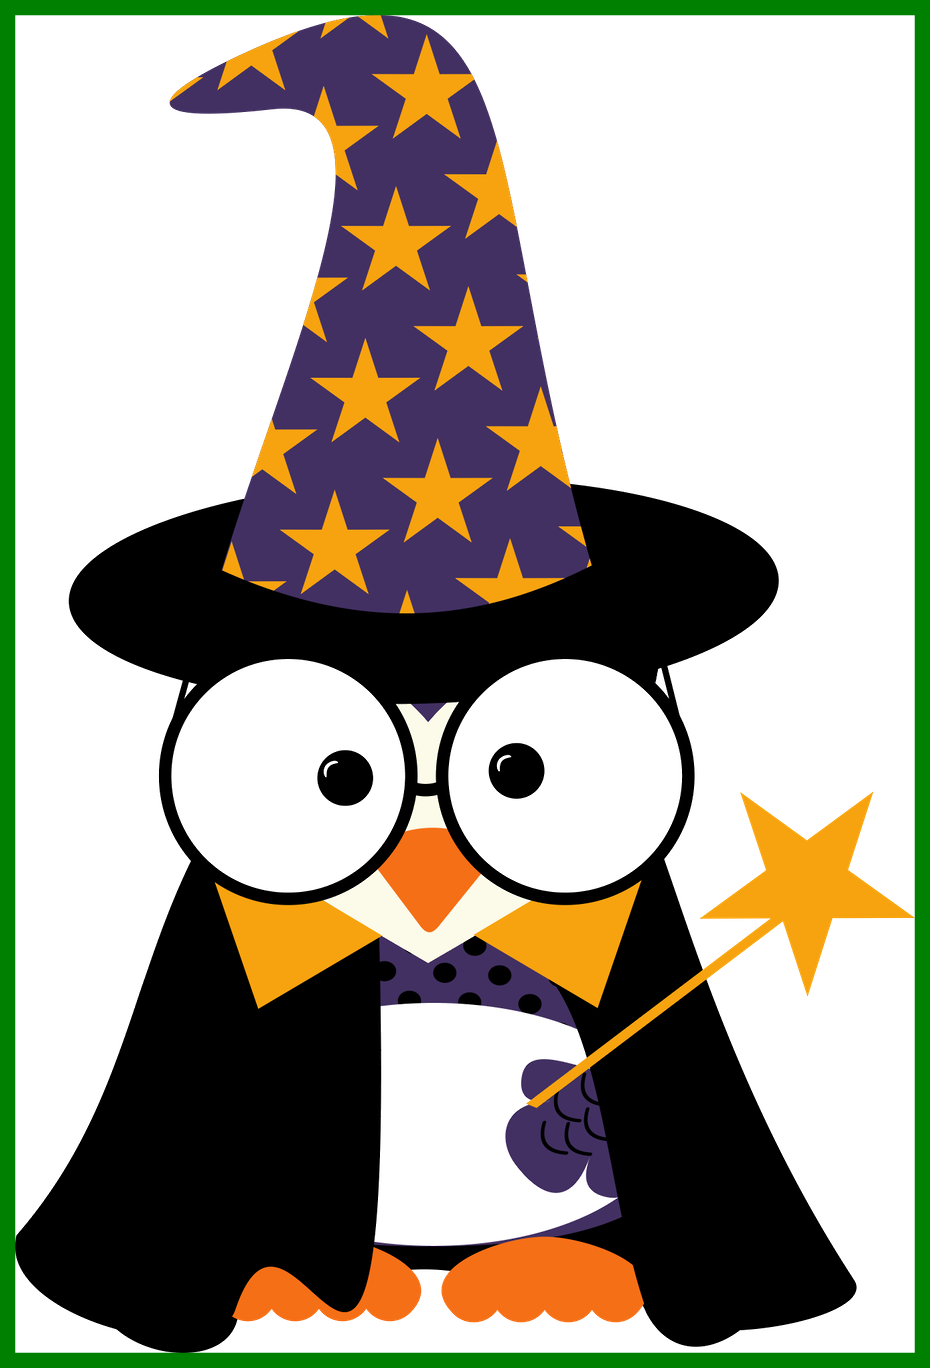 Halloween penguin clipart png free download 15 Ideas of Penguin Clipart Transparent - Cute Penguin png free download